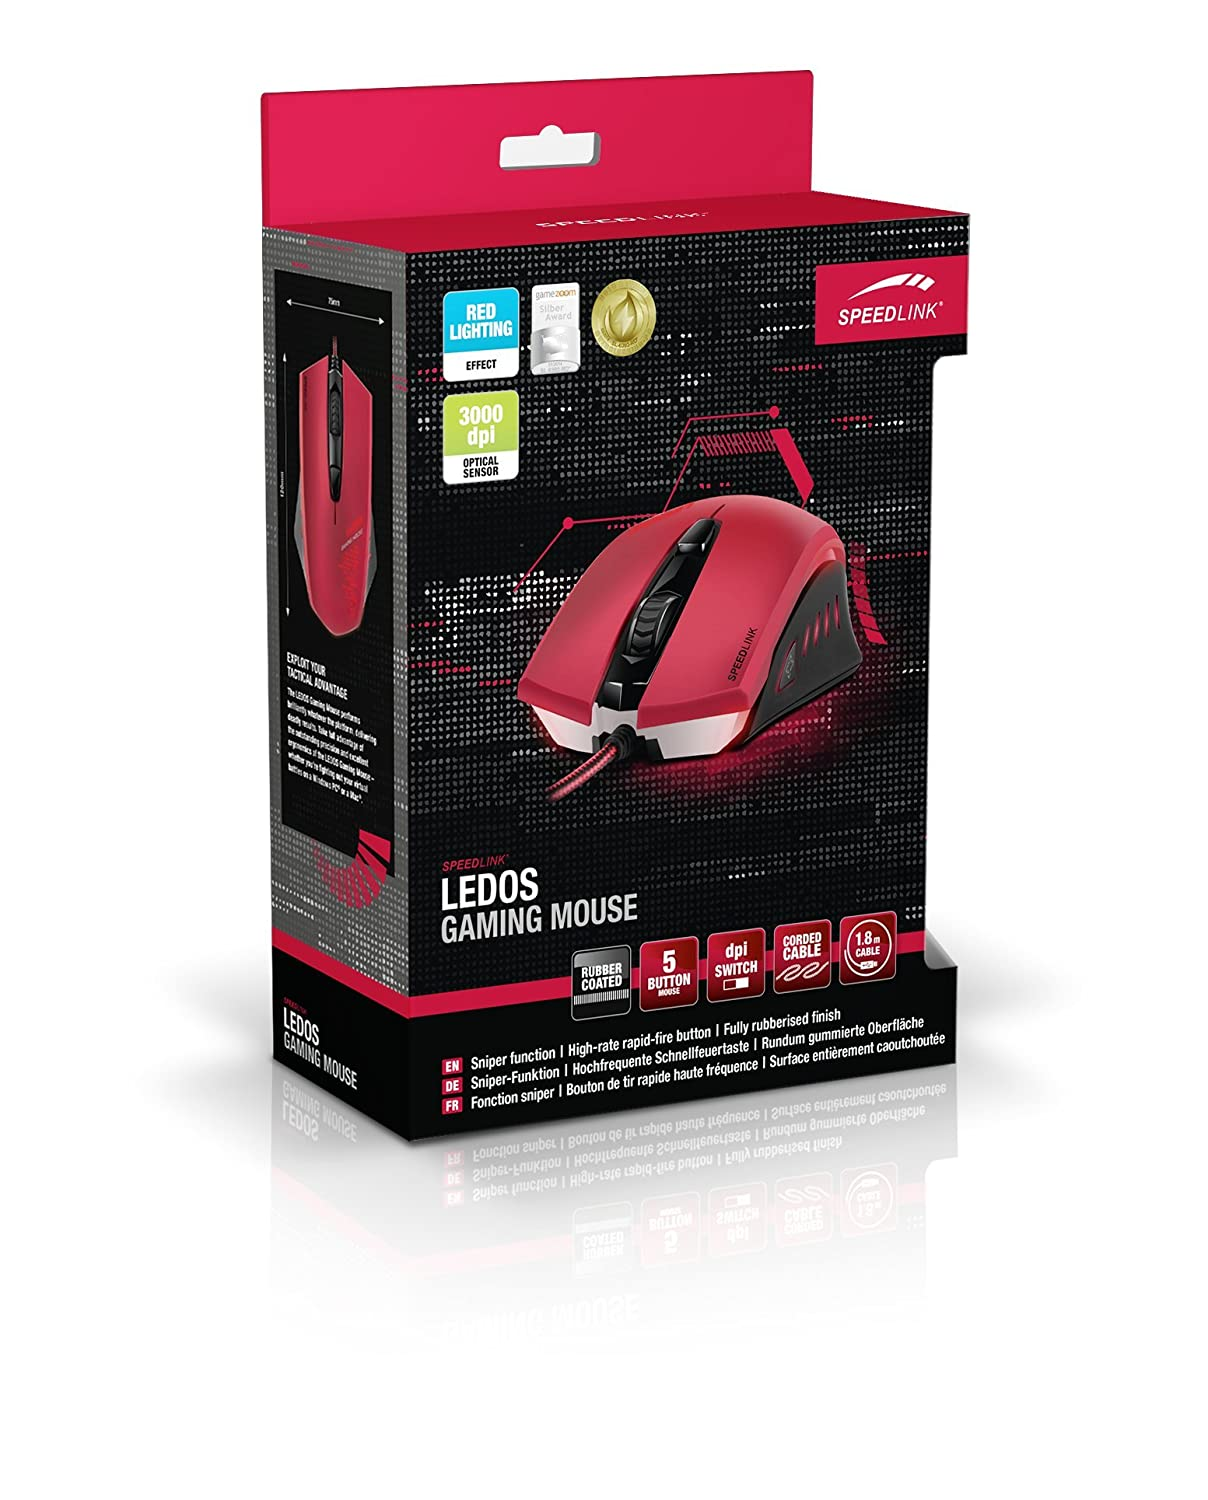 a03871c36a3 SPEEDLINK Ledos Optical 5-button Gaming Mouse, 3000 DPI - Red:  Amazon.co.uk: Computers & Accessories